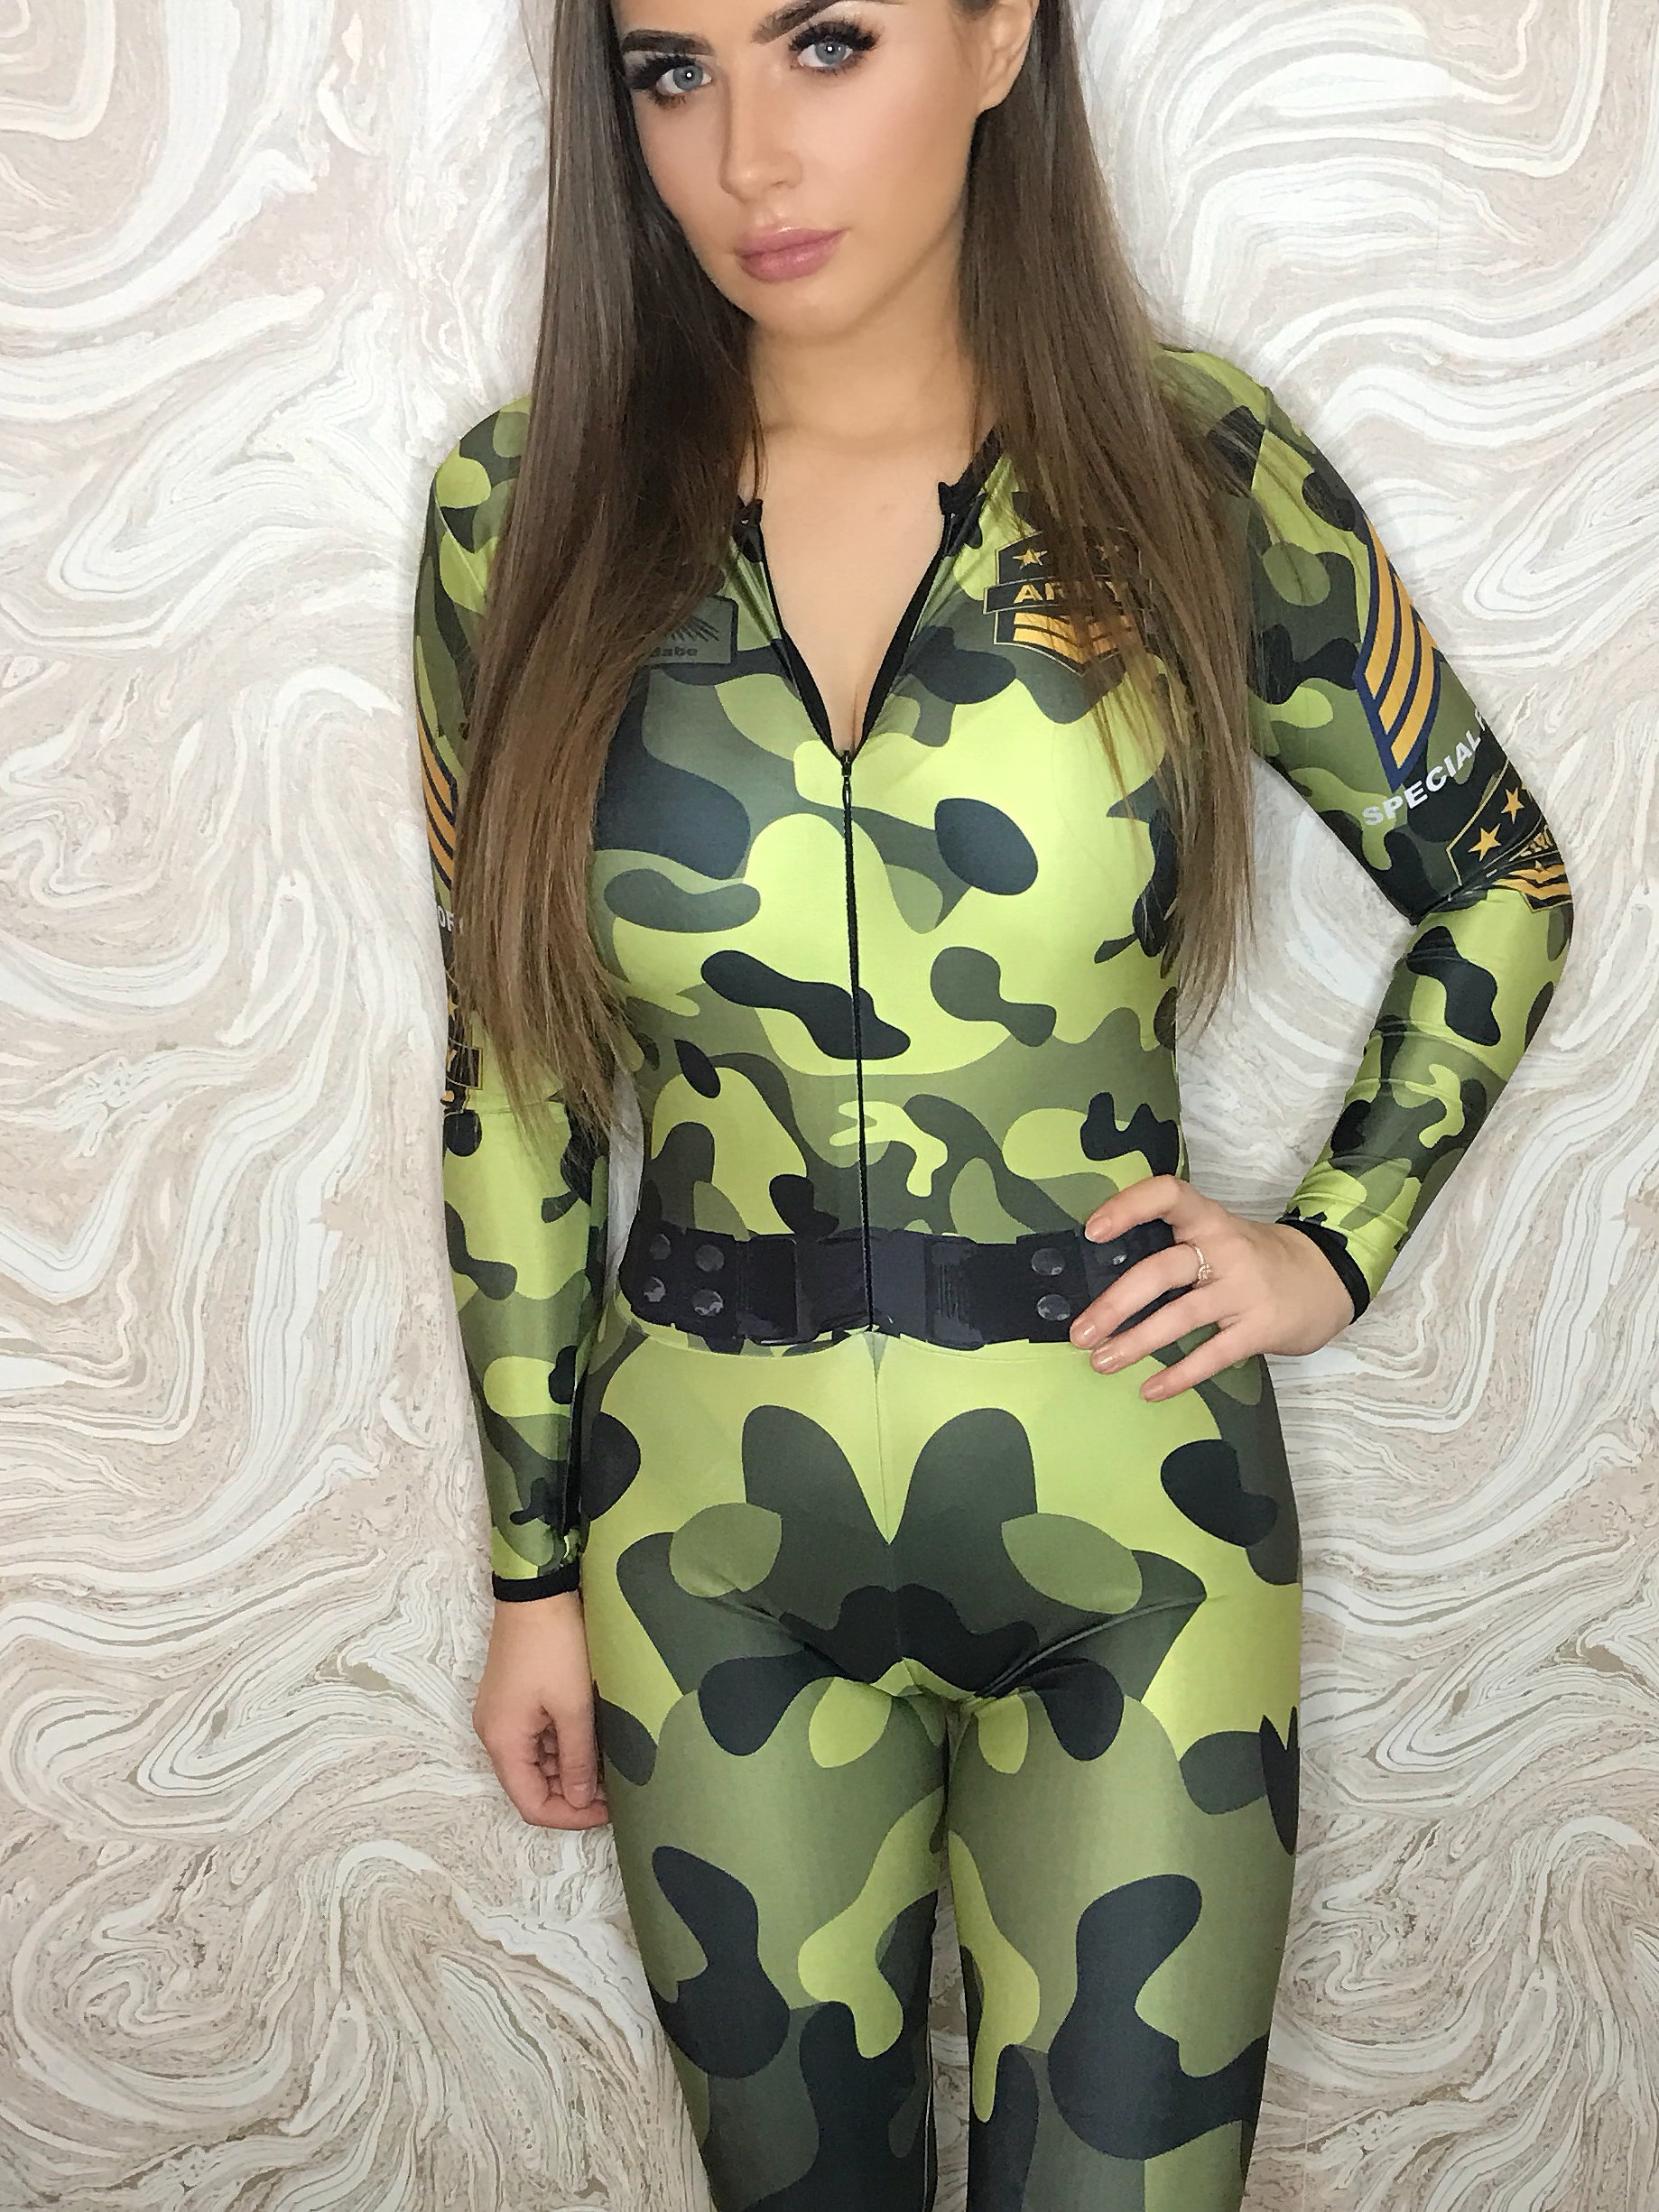 the-Hostess-Company-GRIDGIRL-OUTFIT-Catsuit-Army-1